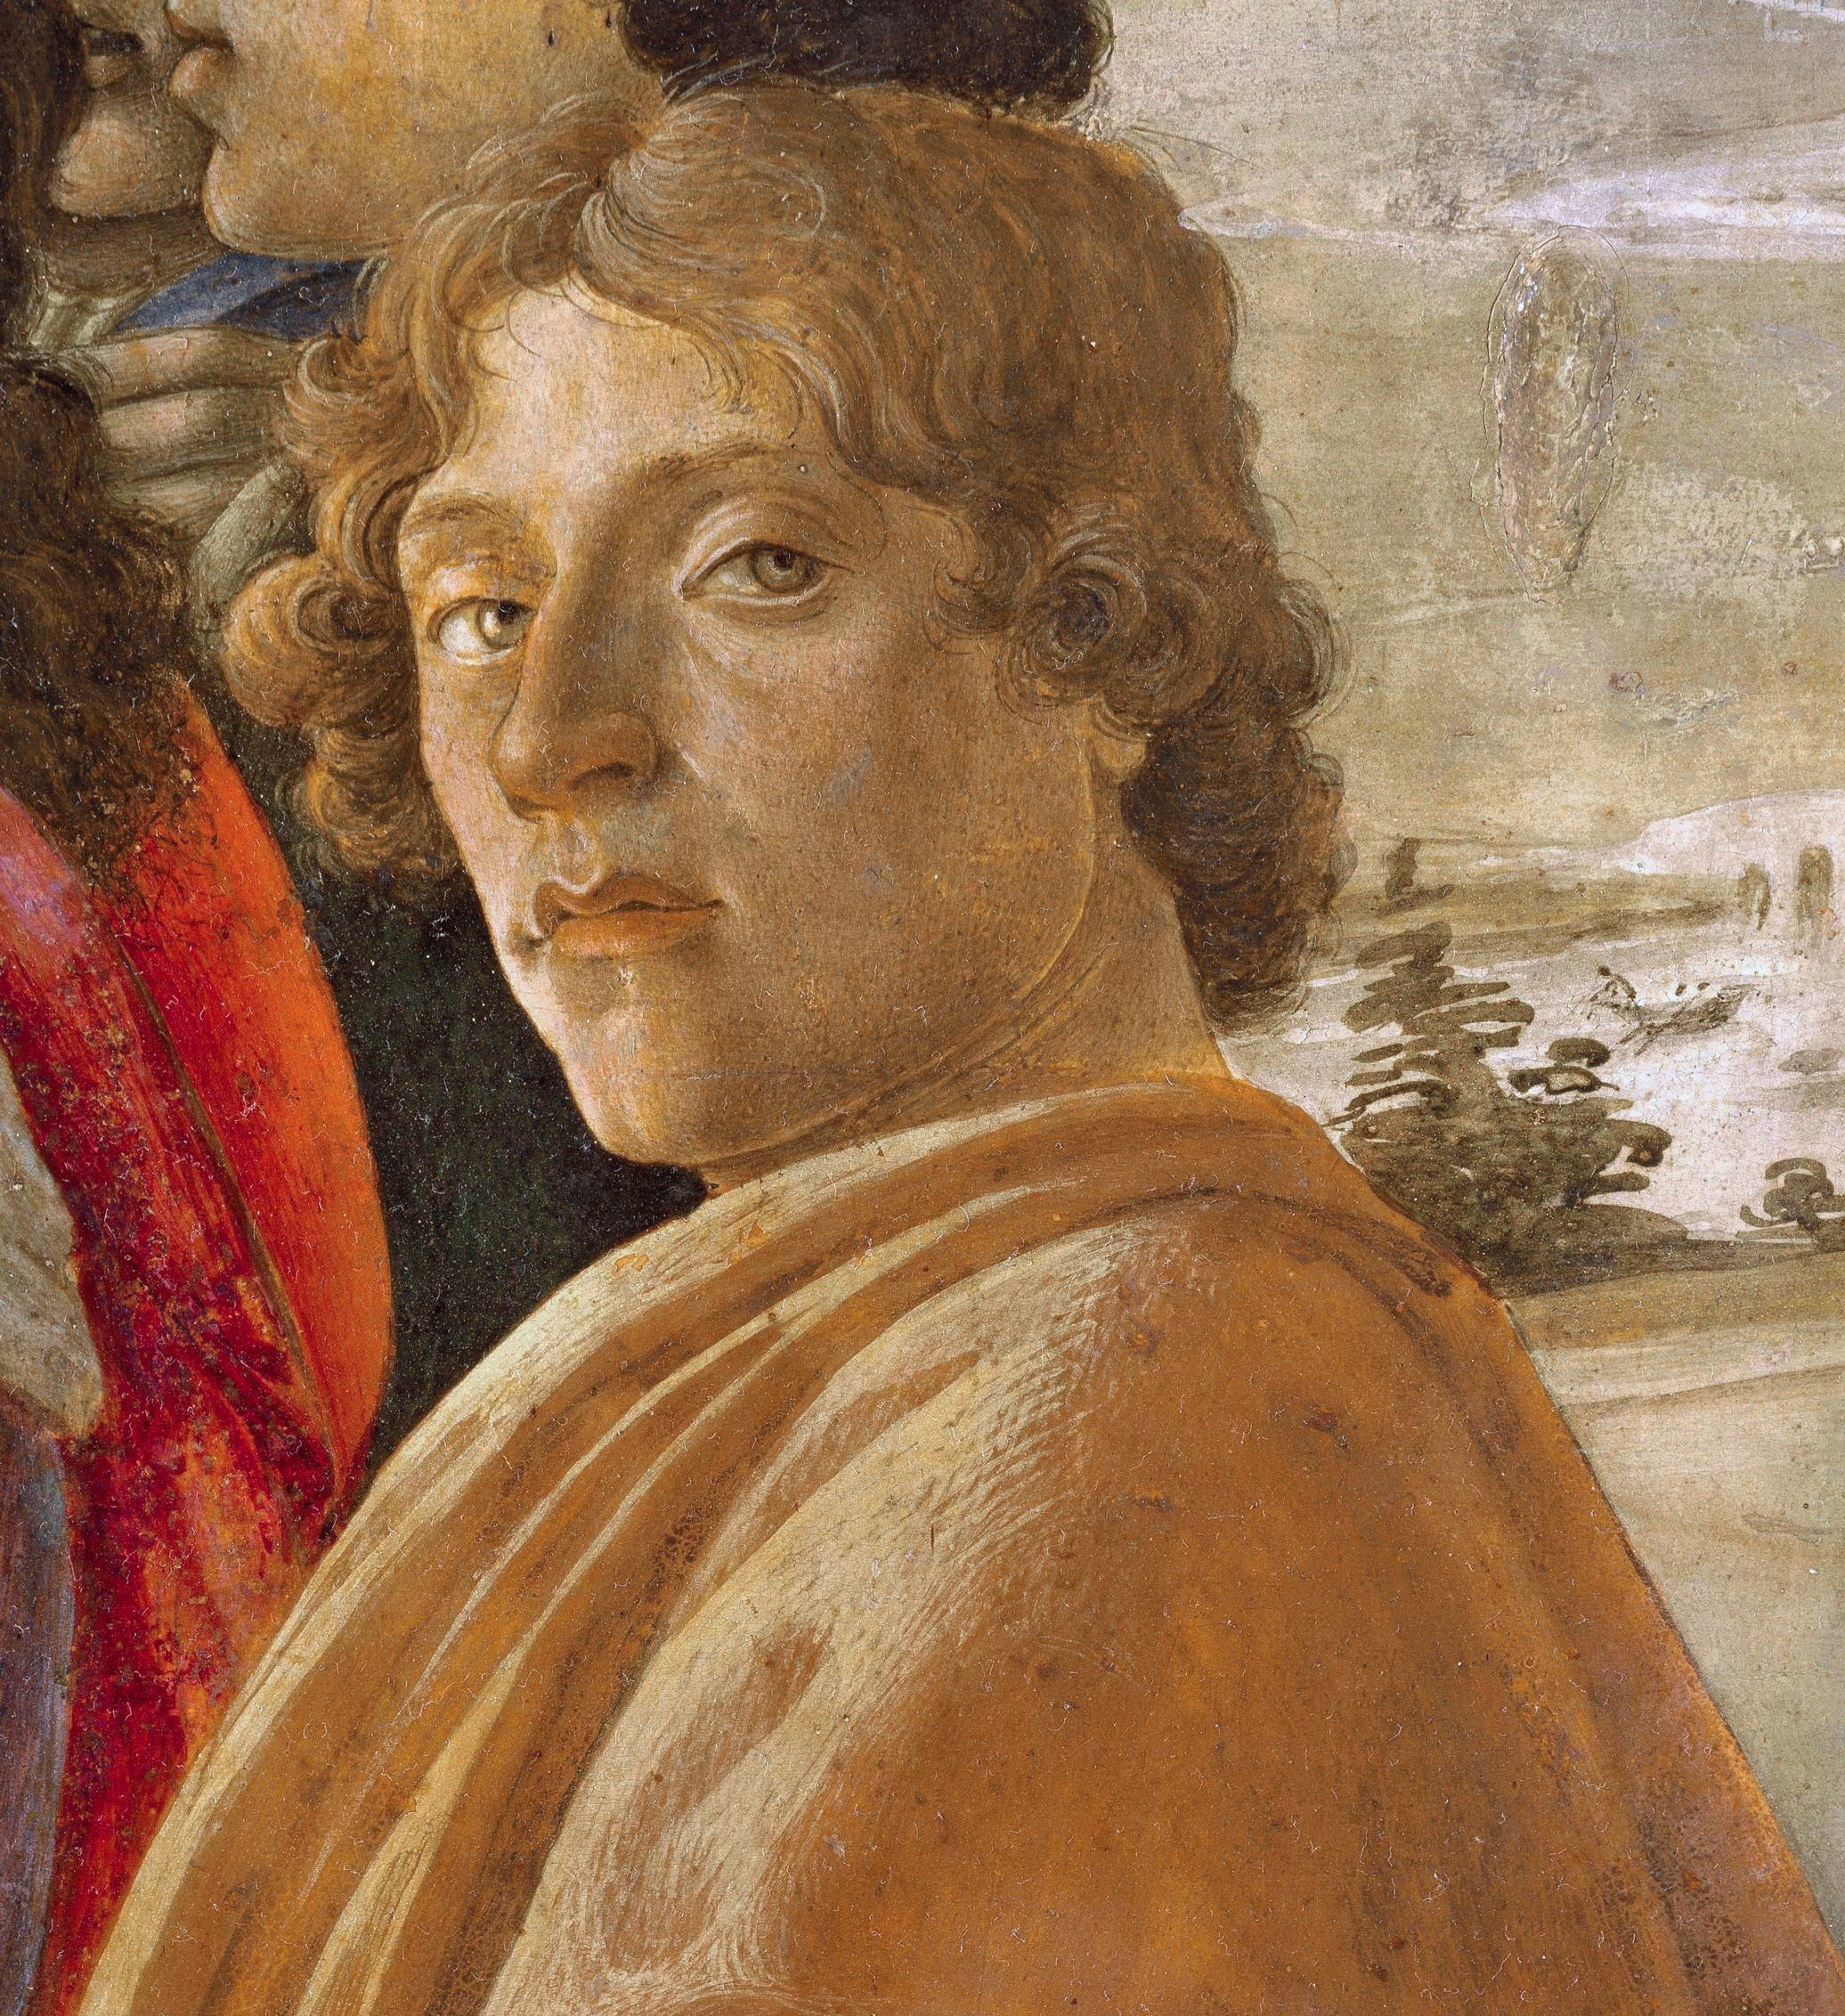 Portrait of Sandro Botticelli